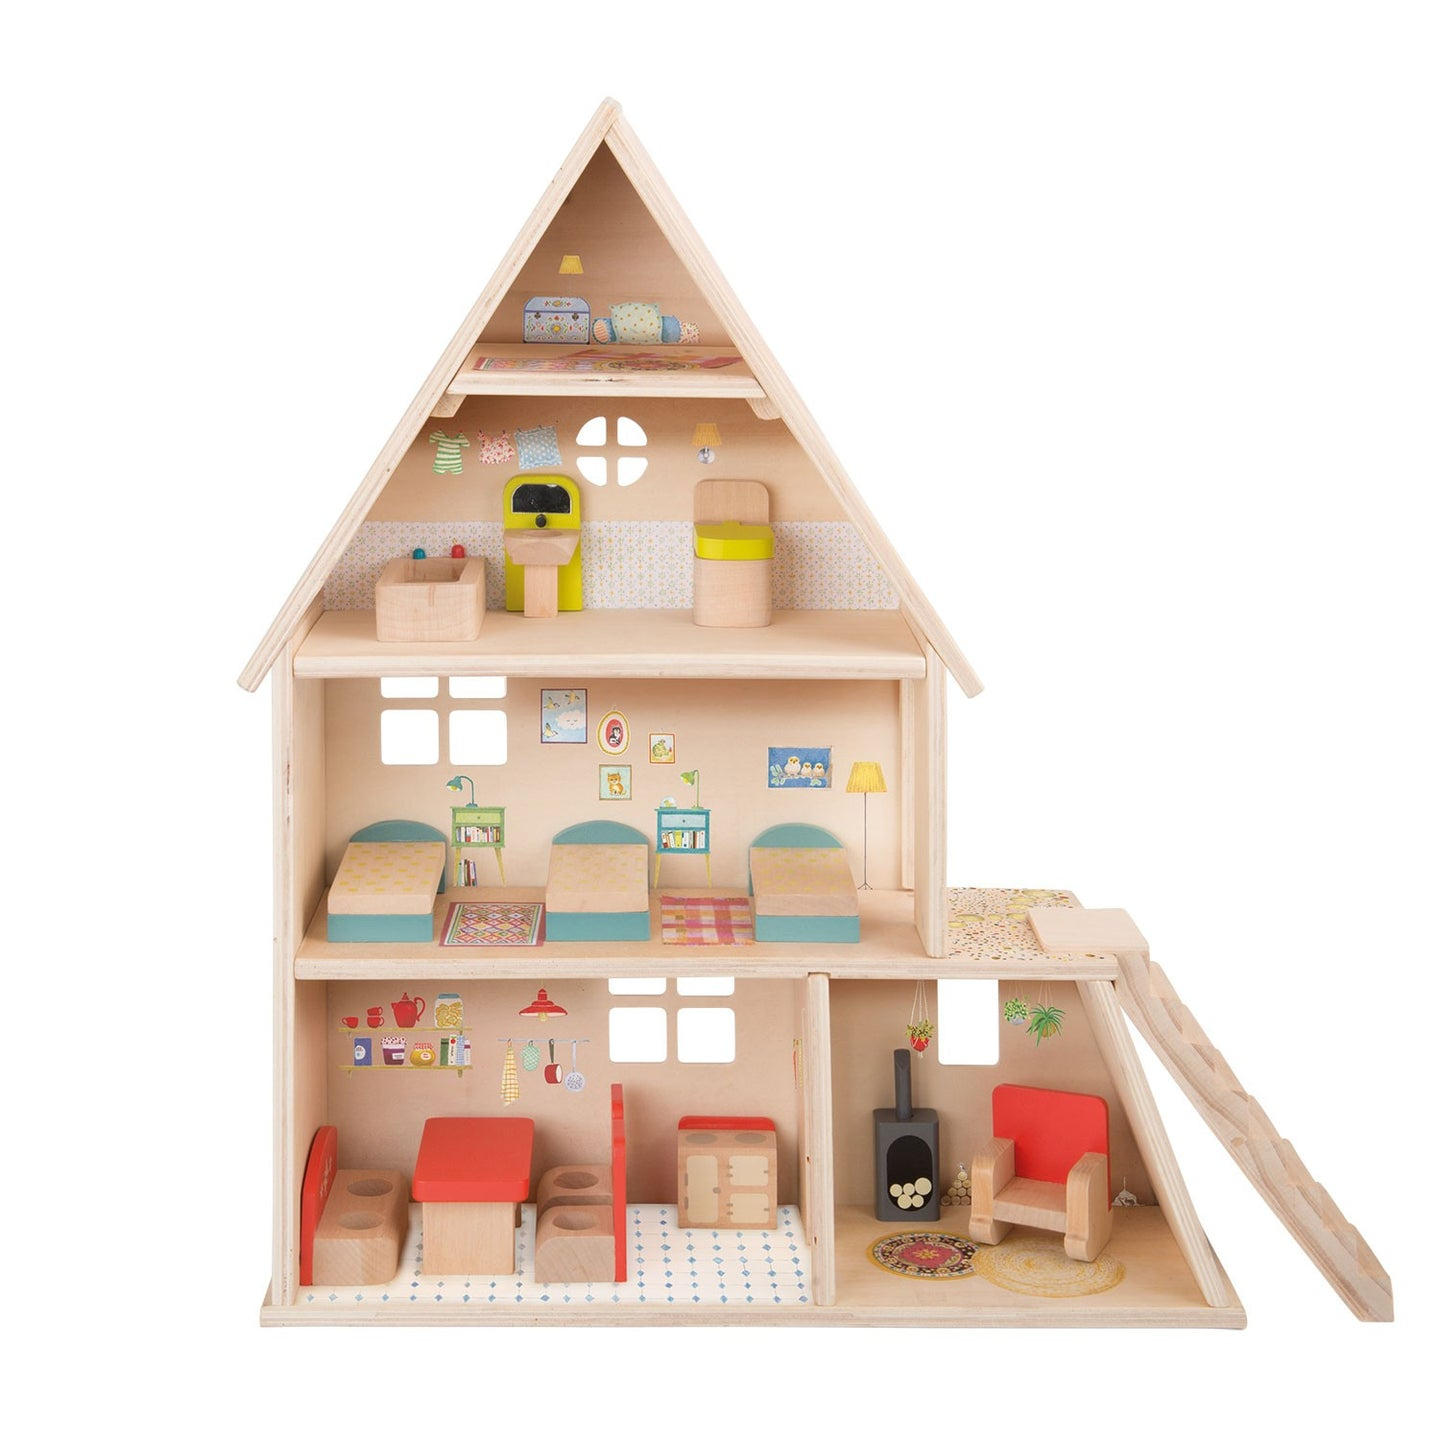 In the style of aFrench country house, this doll's house includes a kitchen, dormitory bedroom, bathroom, conservatory and a loft for hide and seek, plus all its furniture.